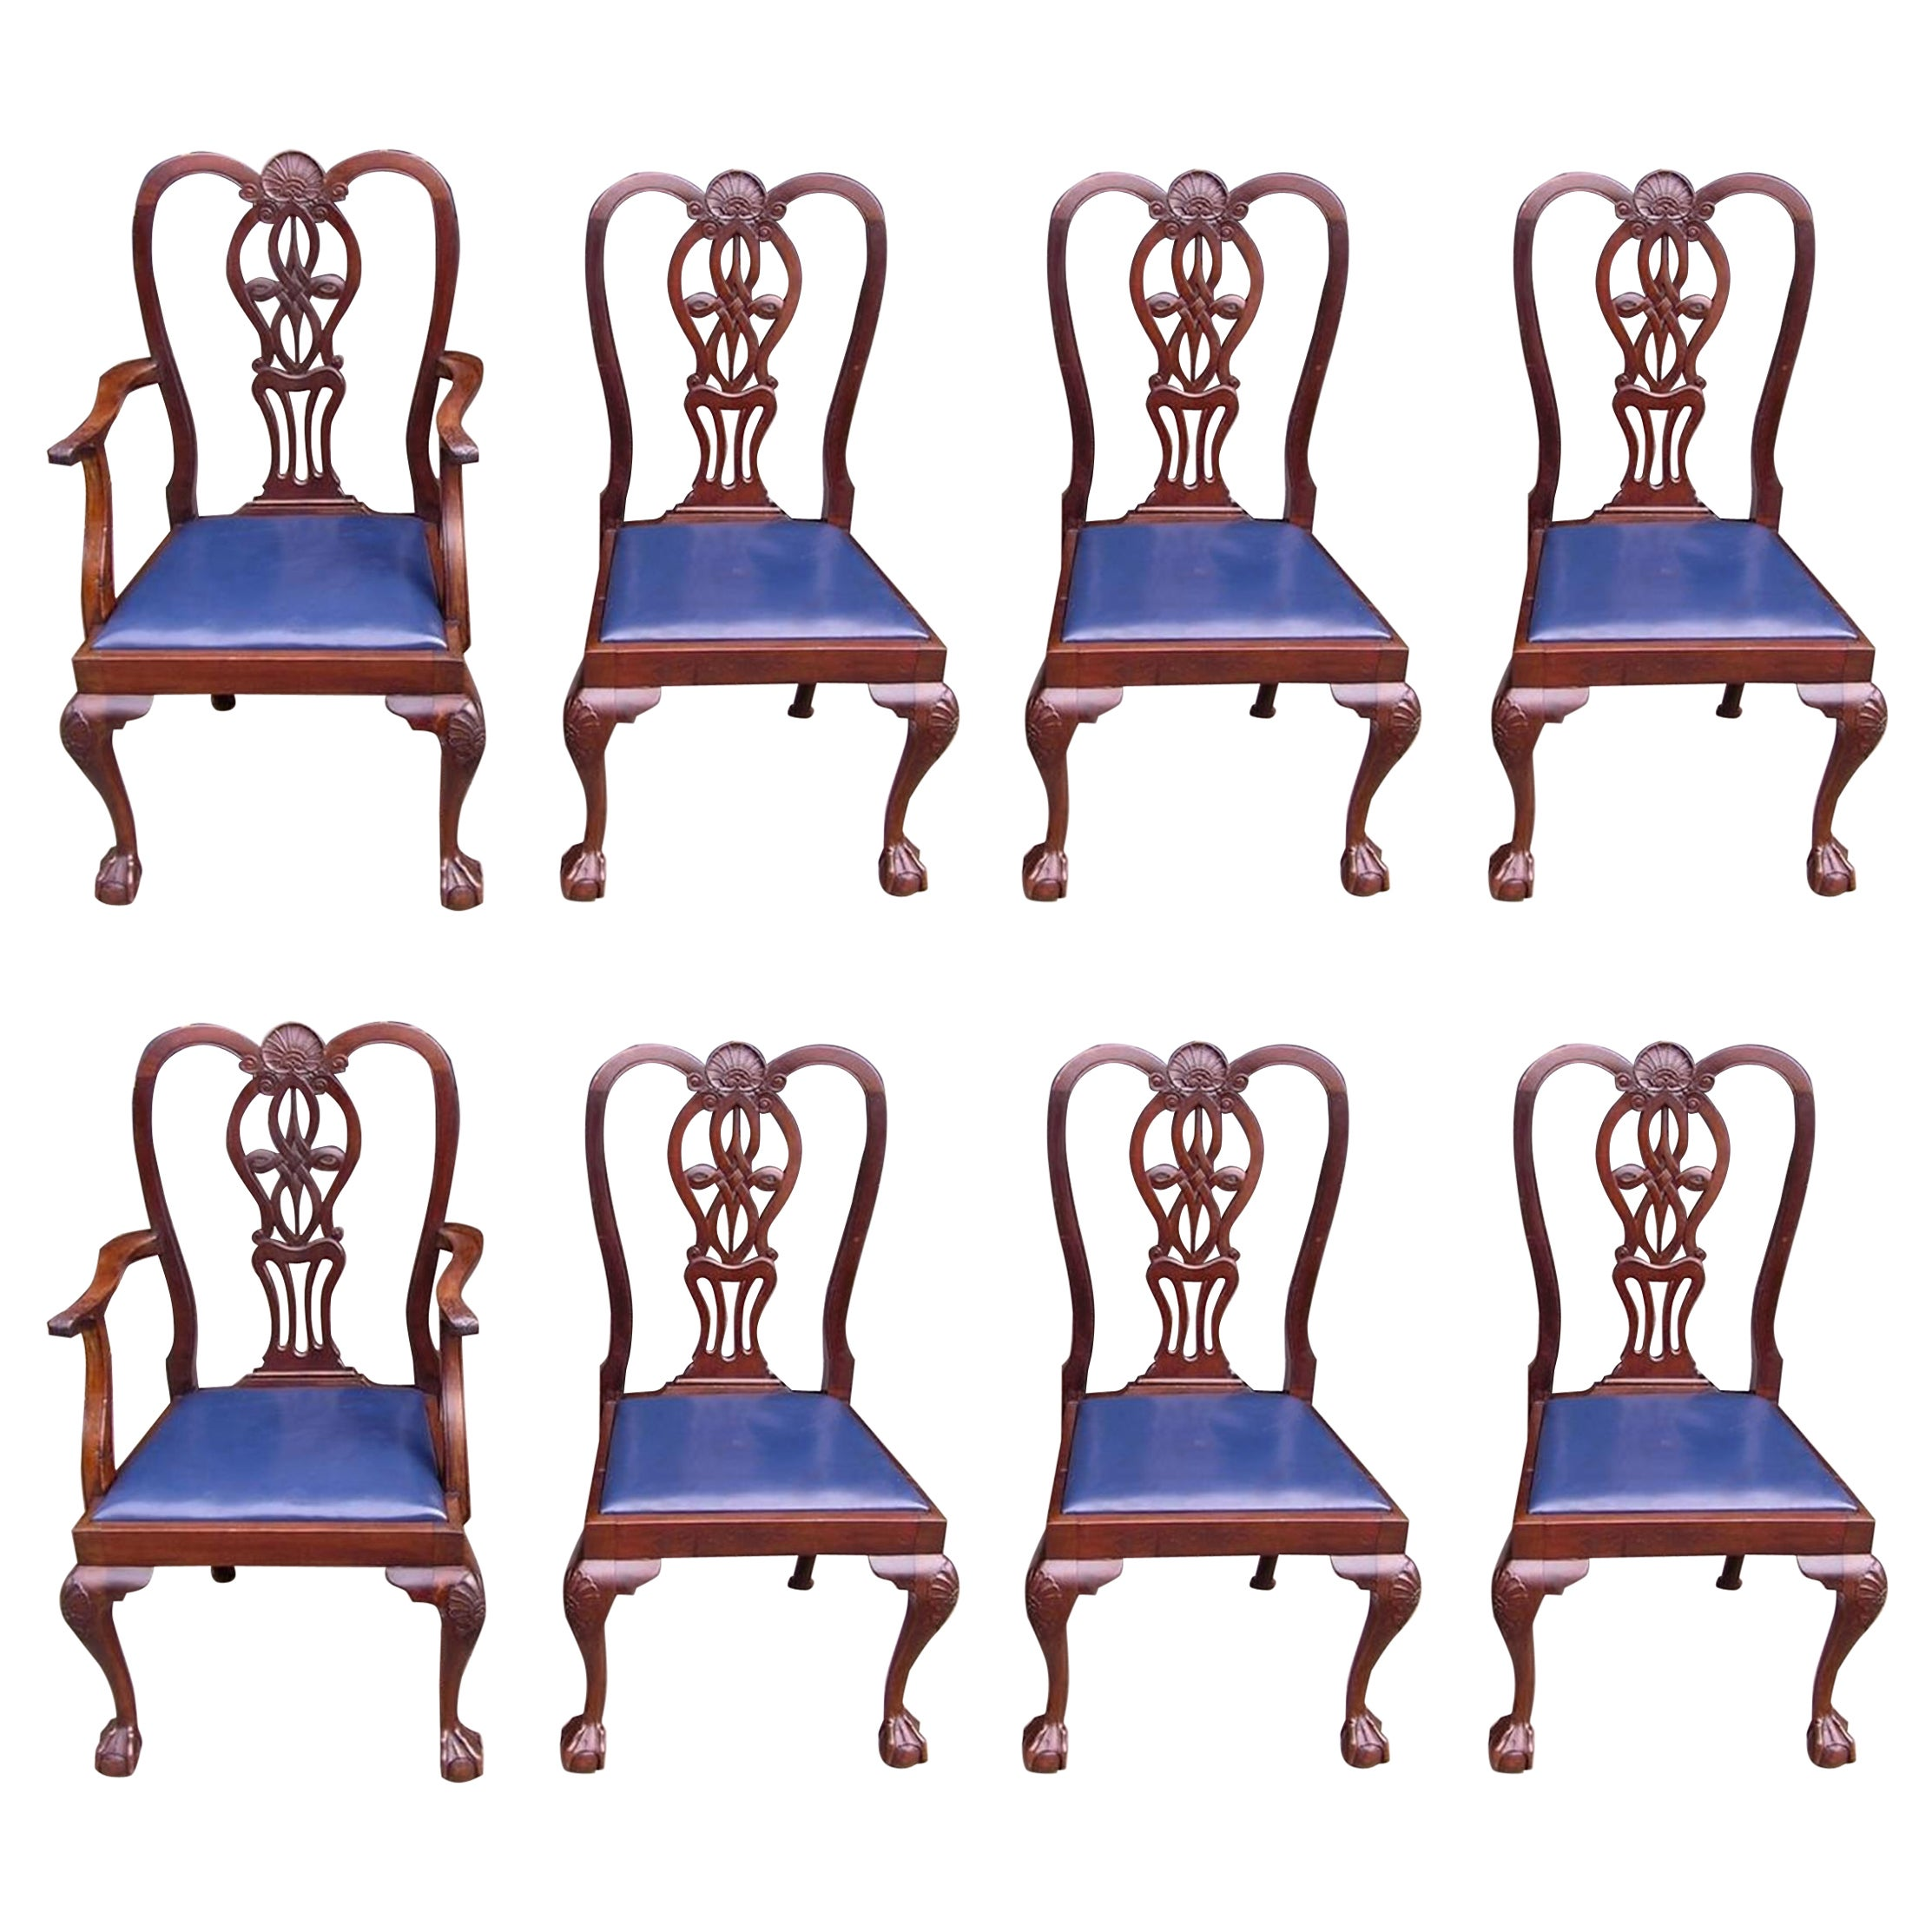 Set of Eight English Mahogany Dining Room Chairs with Leather Seats, Circa 1850